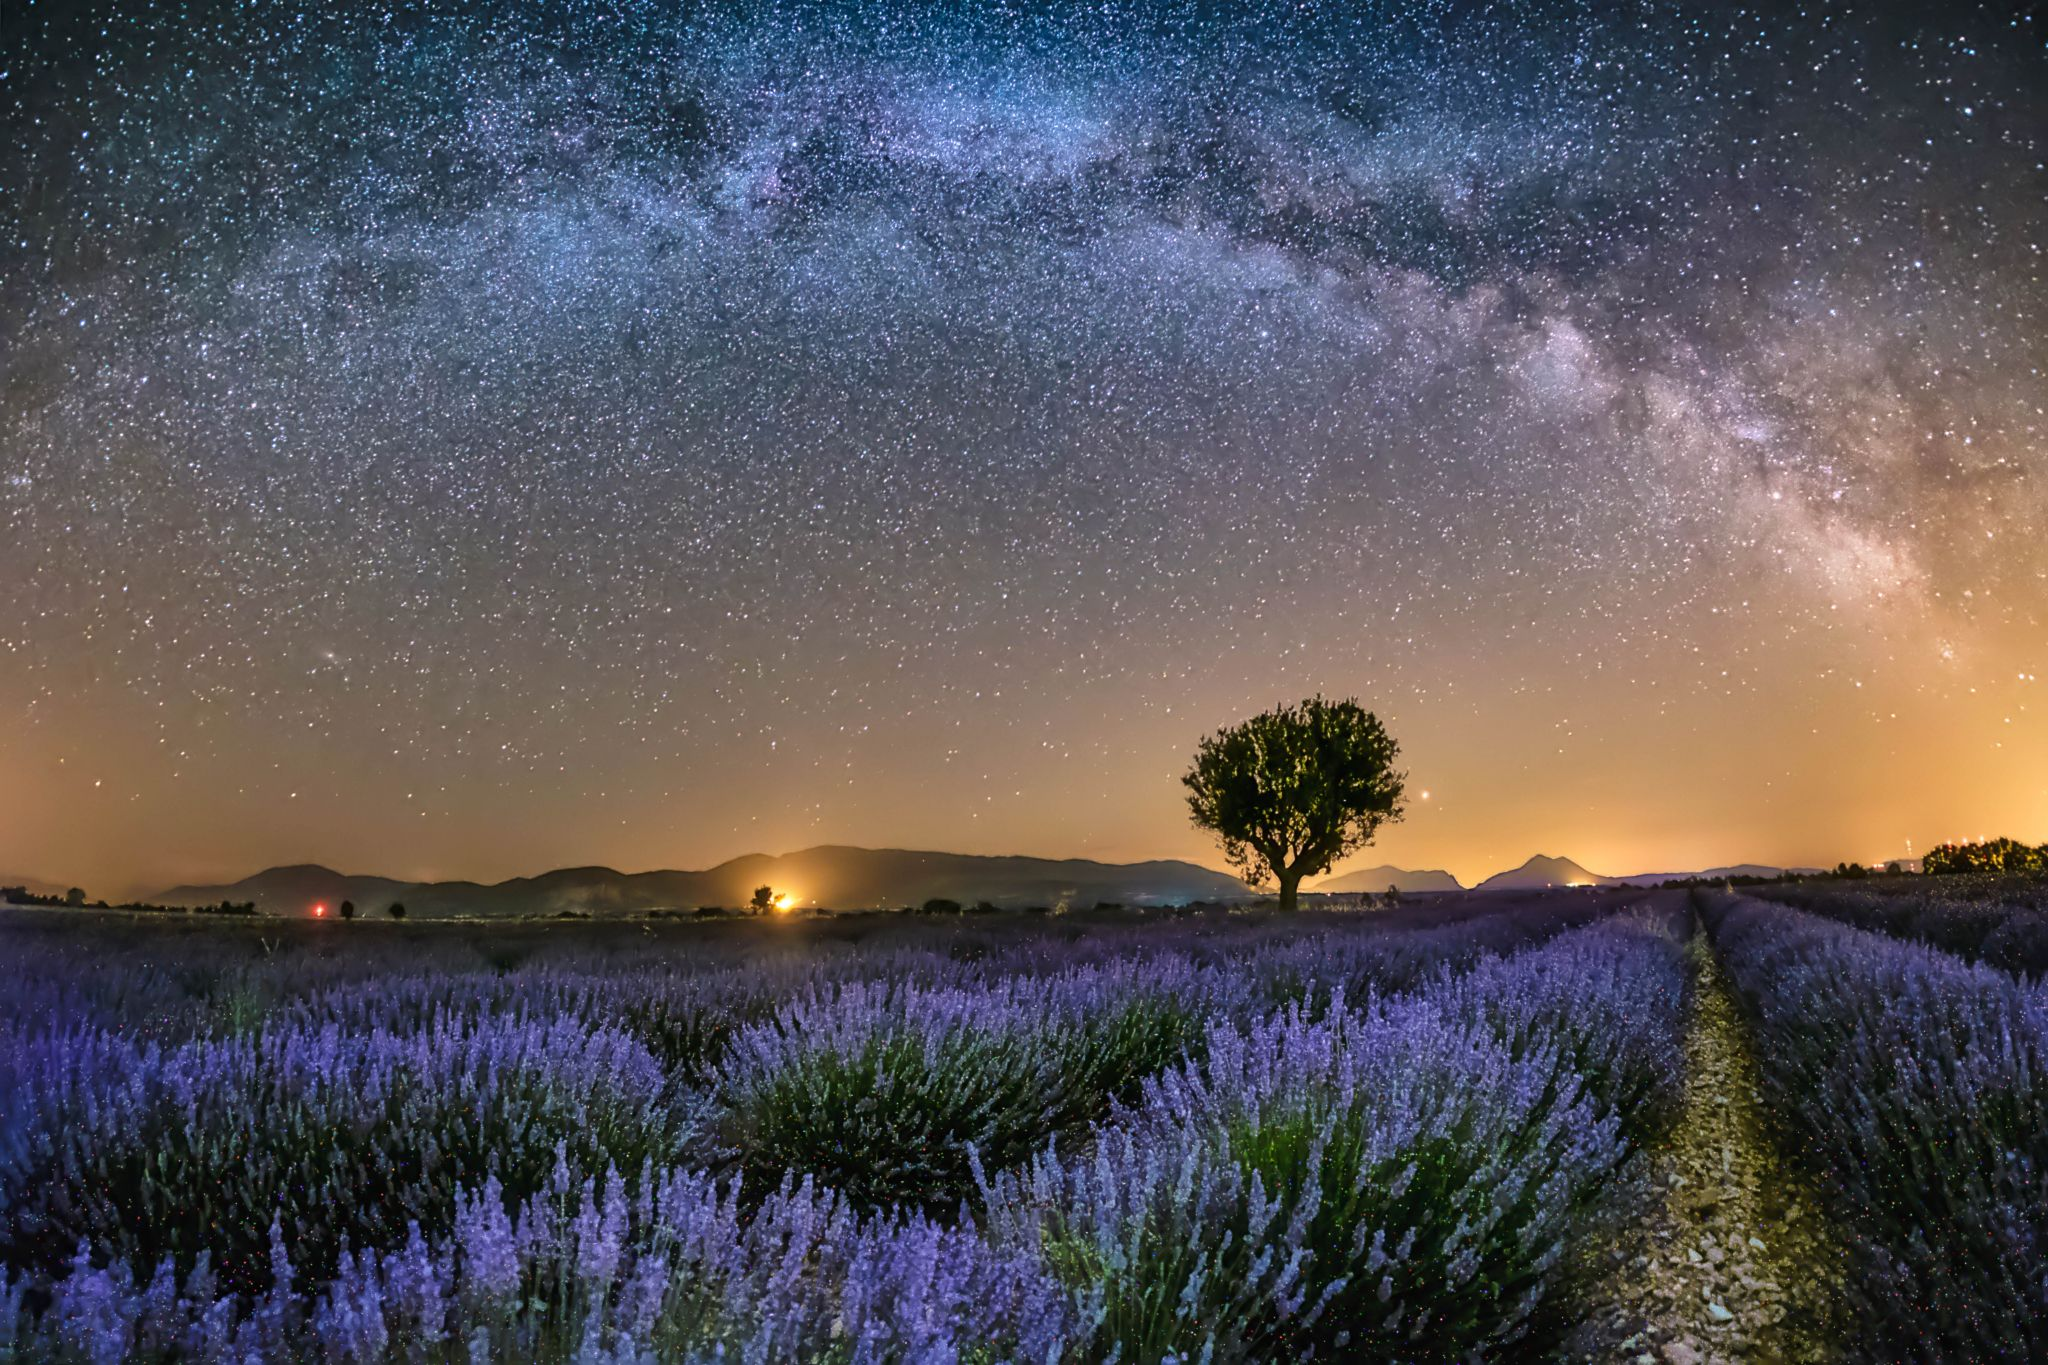 The tree at Valensole, France